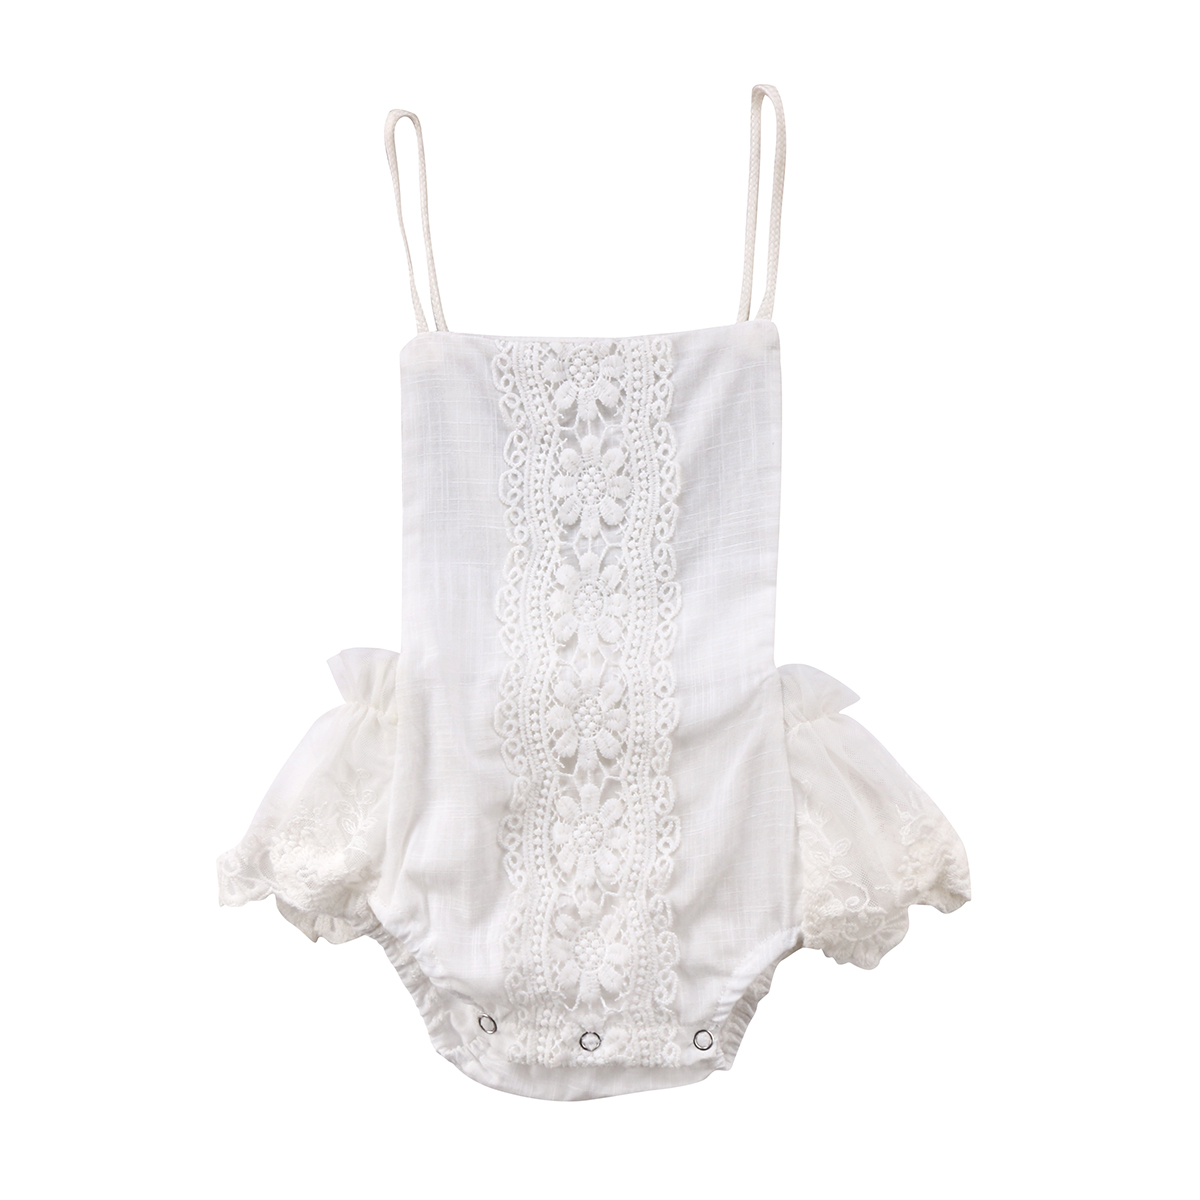 Pudcoco Kid Baby Girl Clothes Princess White Lace Floral   Romper   Halter Jumpsuit Sunsuit Easter Costume baby girl Outfit 0-24M